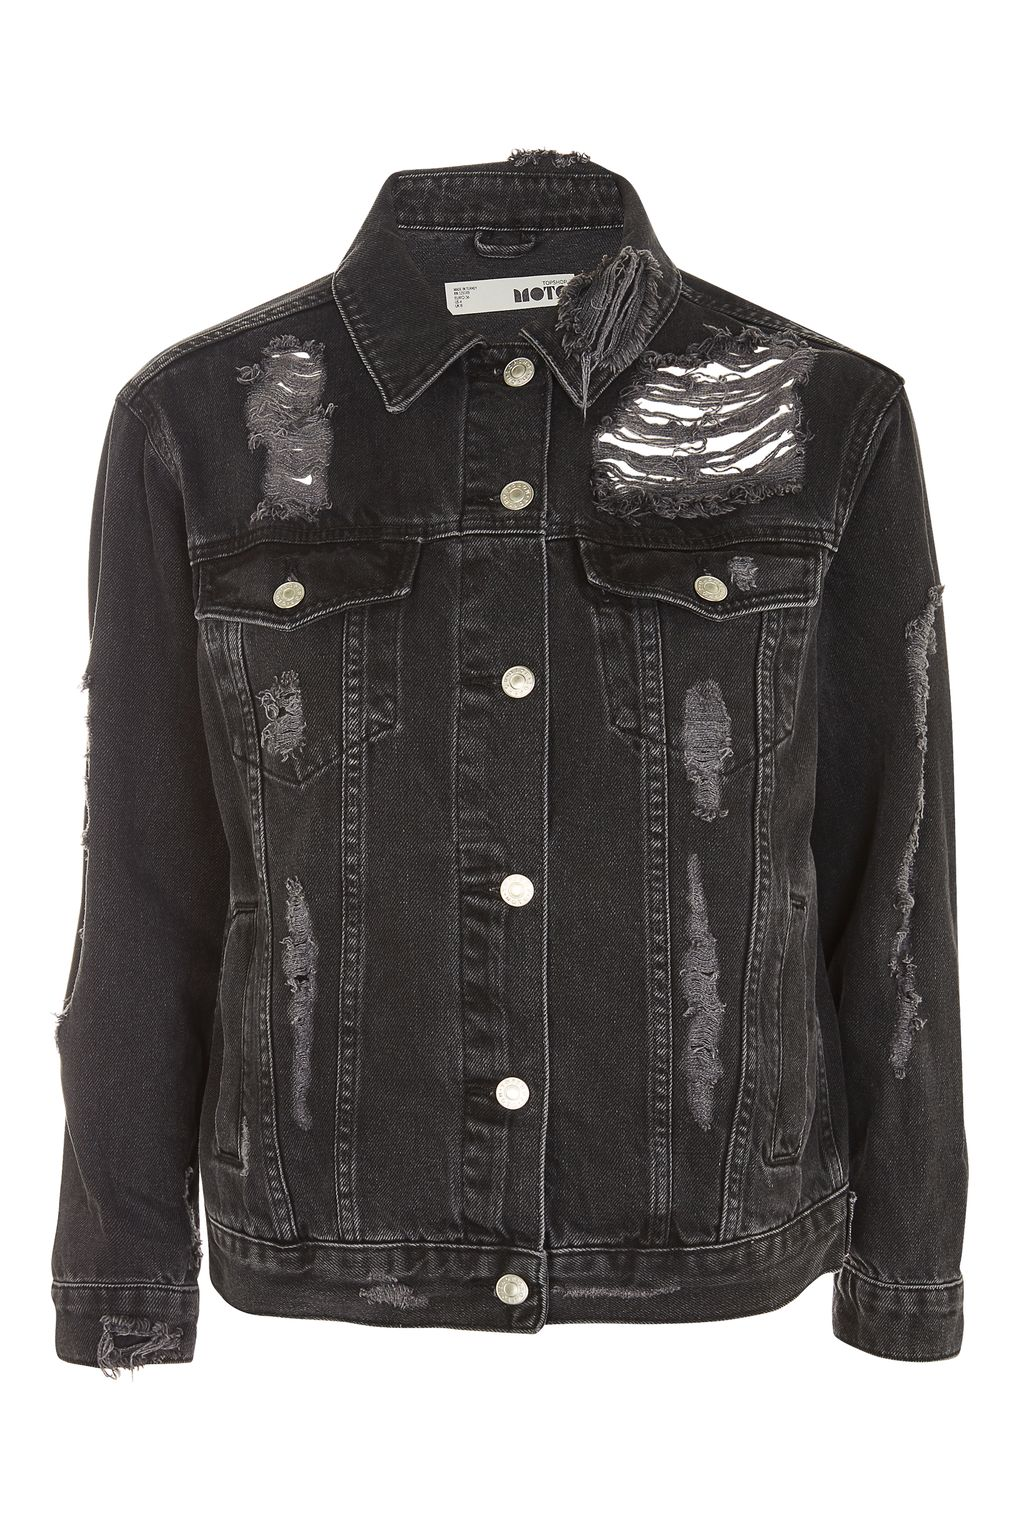 3b2c51bf605 MOTO Extreme Ripped Denim Jacket - ShopperBoard